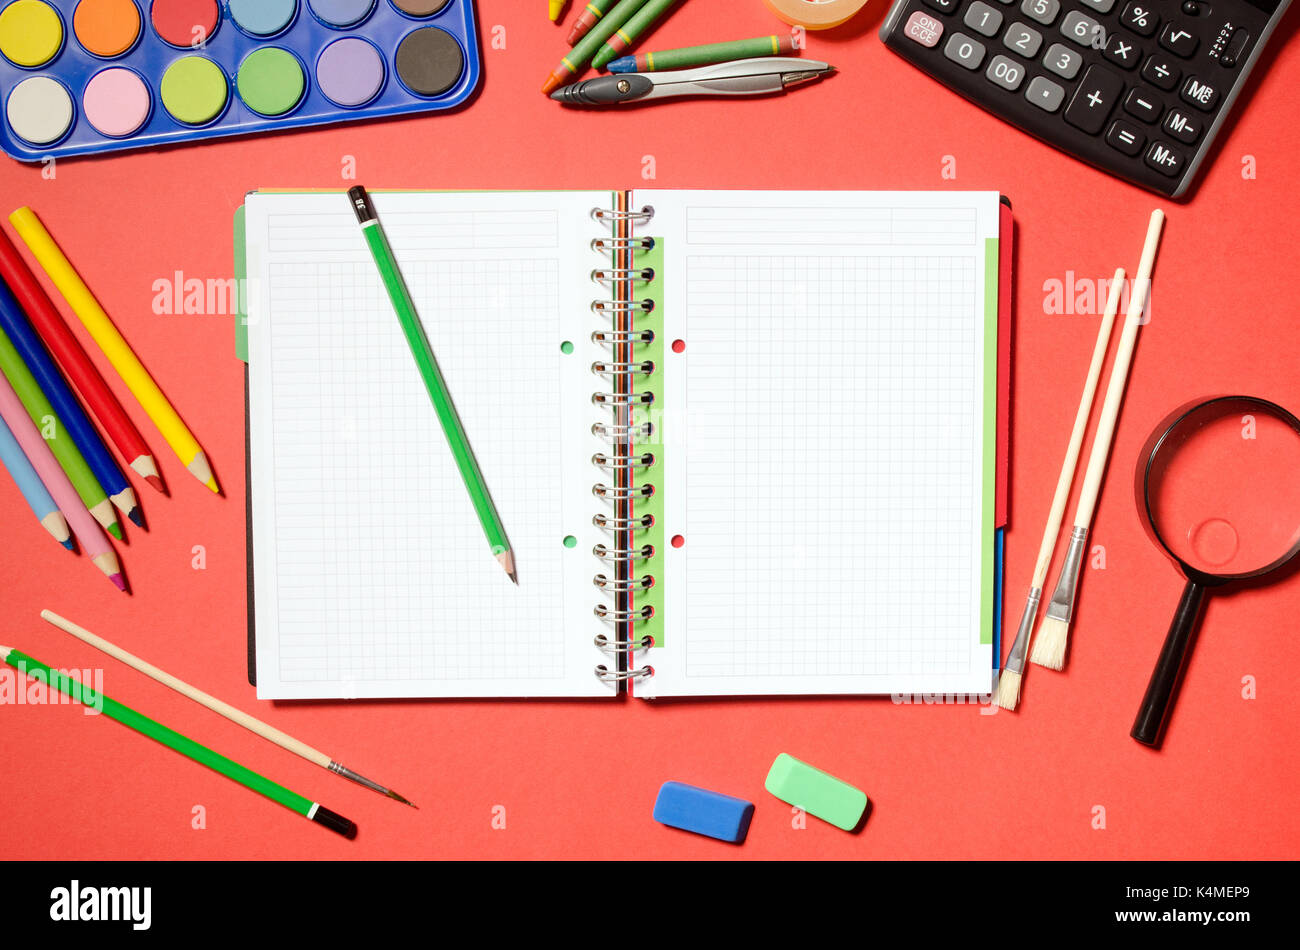 Blank Notepad With School And Office Stationery, Red Background. Stationery  Office Desk Top View Table School Student Concept